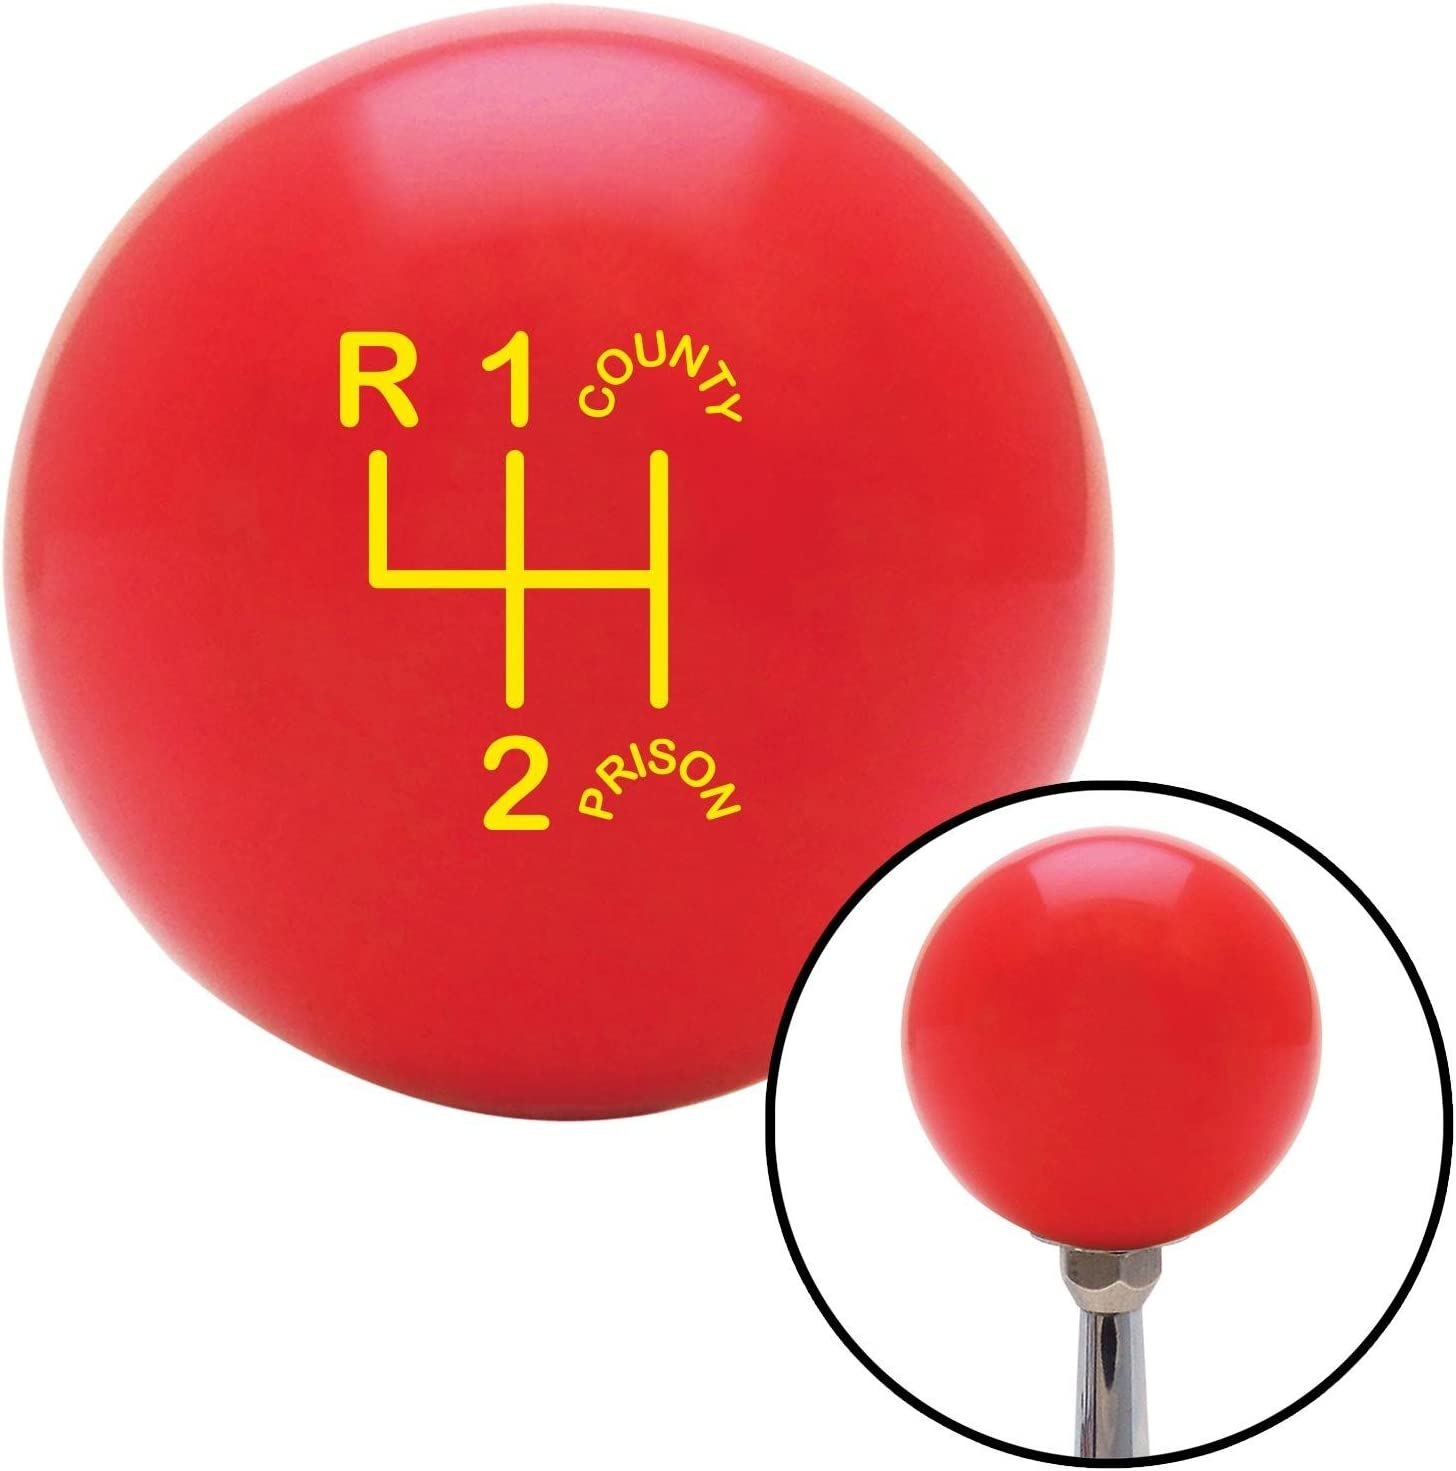 Yellow Shift Pattern CP3n American Shifter 100517 Red Shift Knob with M16 x 1.5 Insert